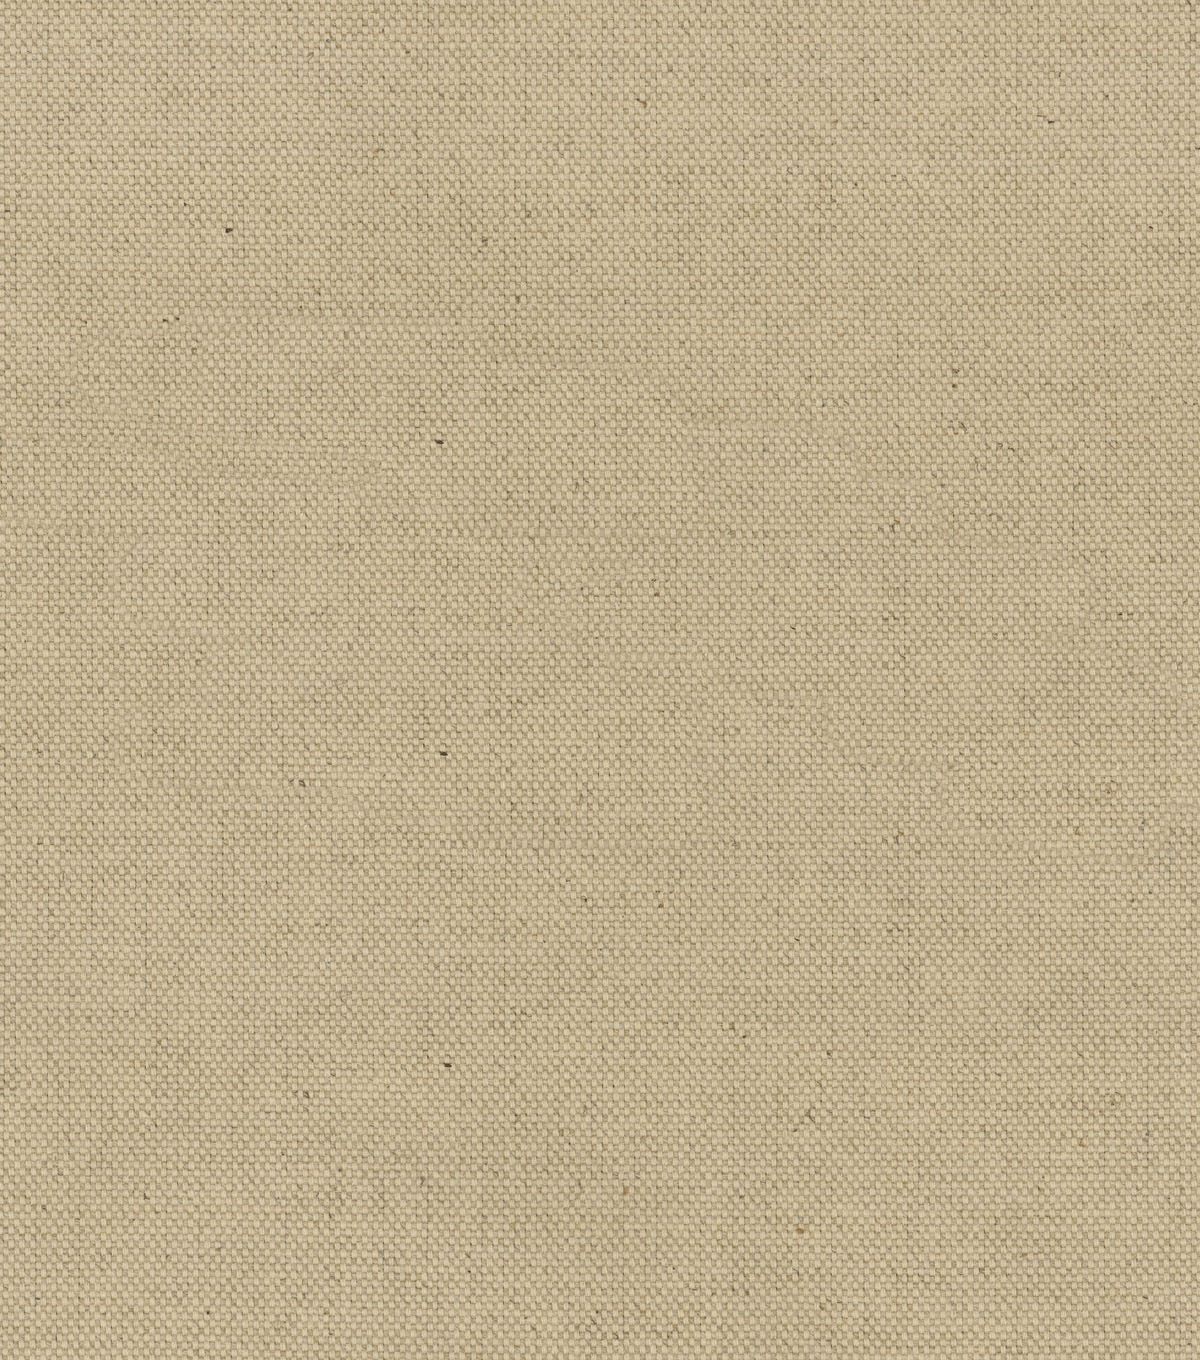 P/K Lifestyles Solid Fabric 54\u0022-Union Solid/Sandrift